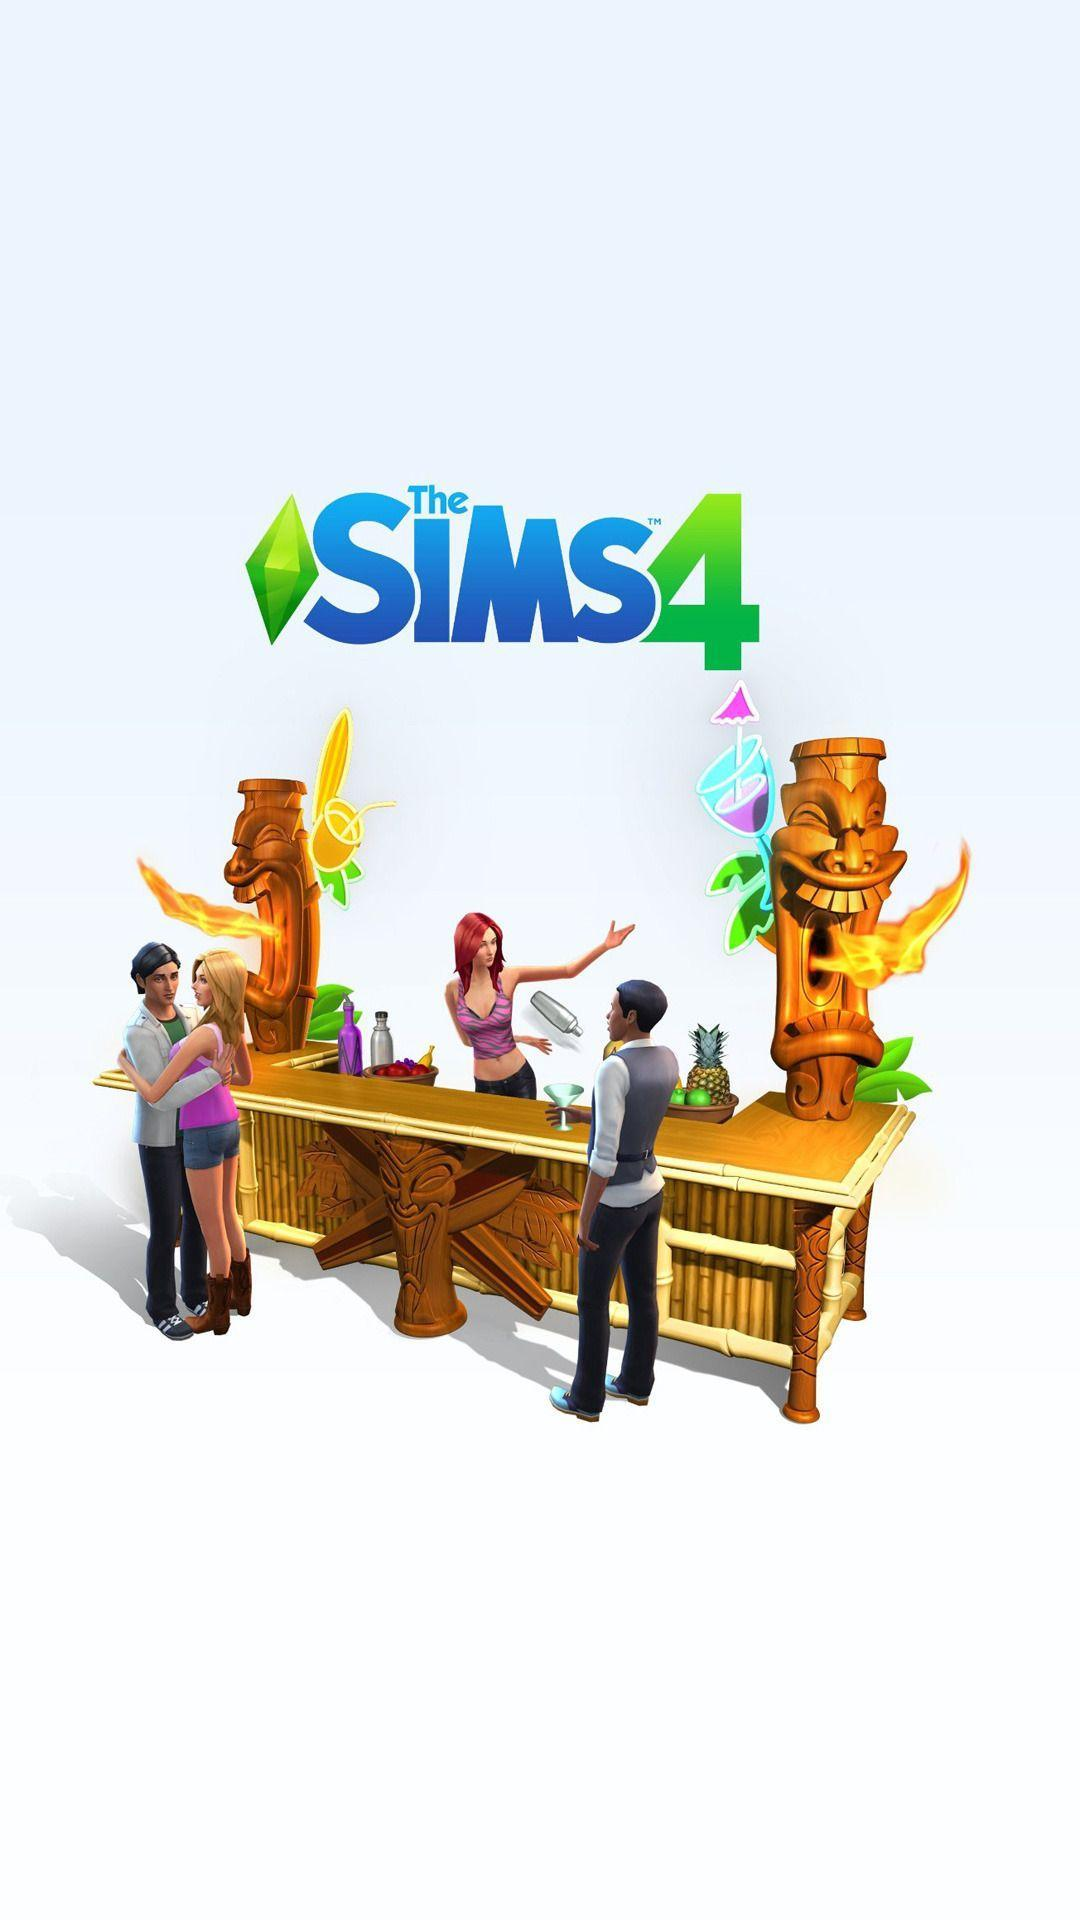 The Sims 4 Wallpapers - Wallpaper Cave